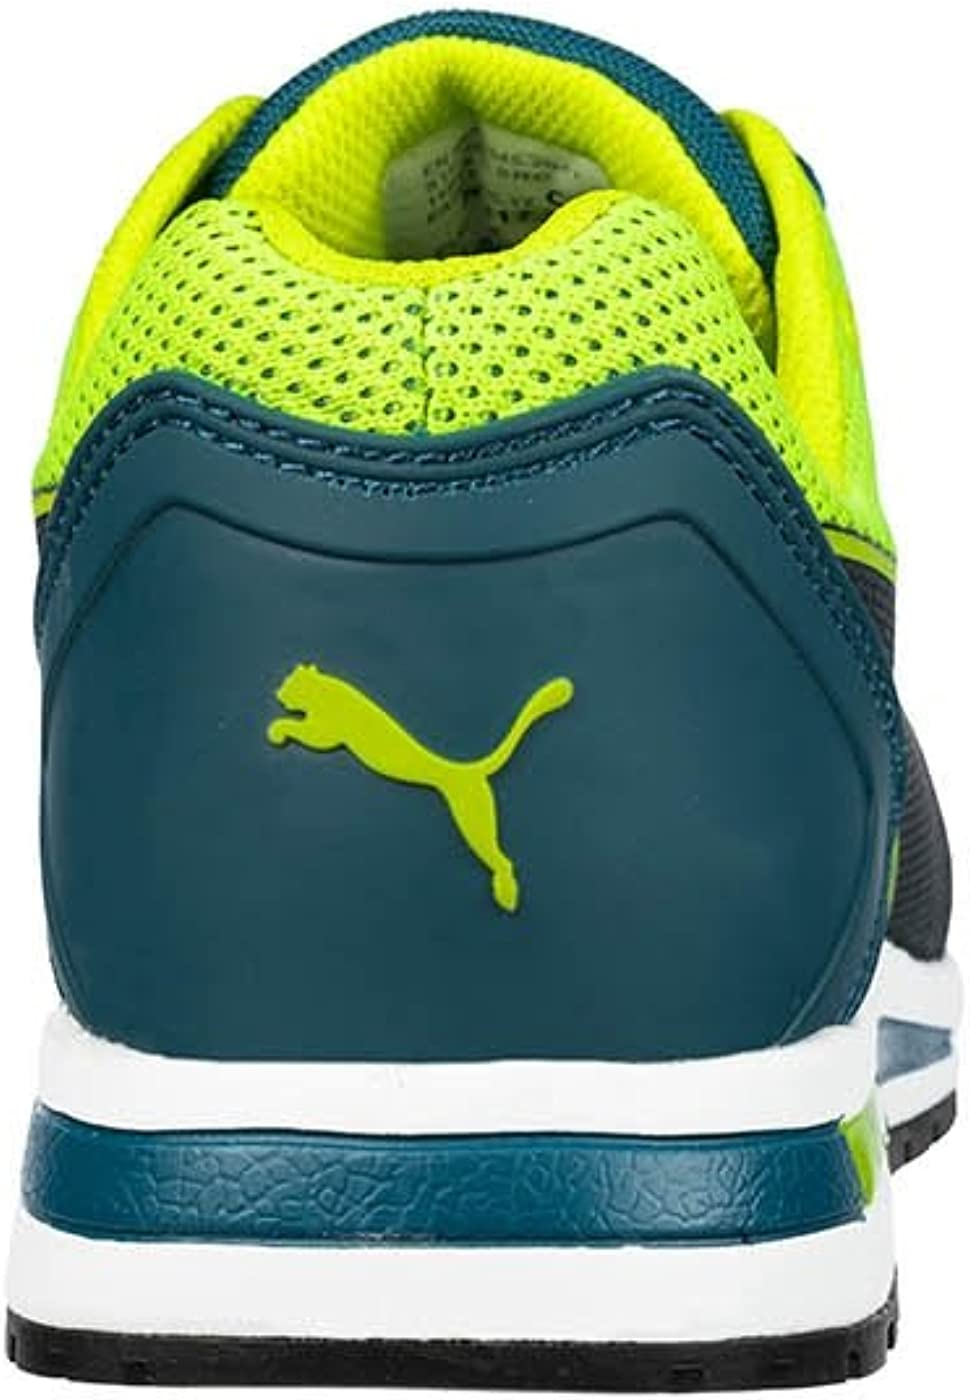 Puma Elevate Knit Green Low 643170 Scarpe antinfortunistiche S1P ESD